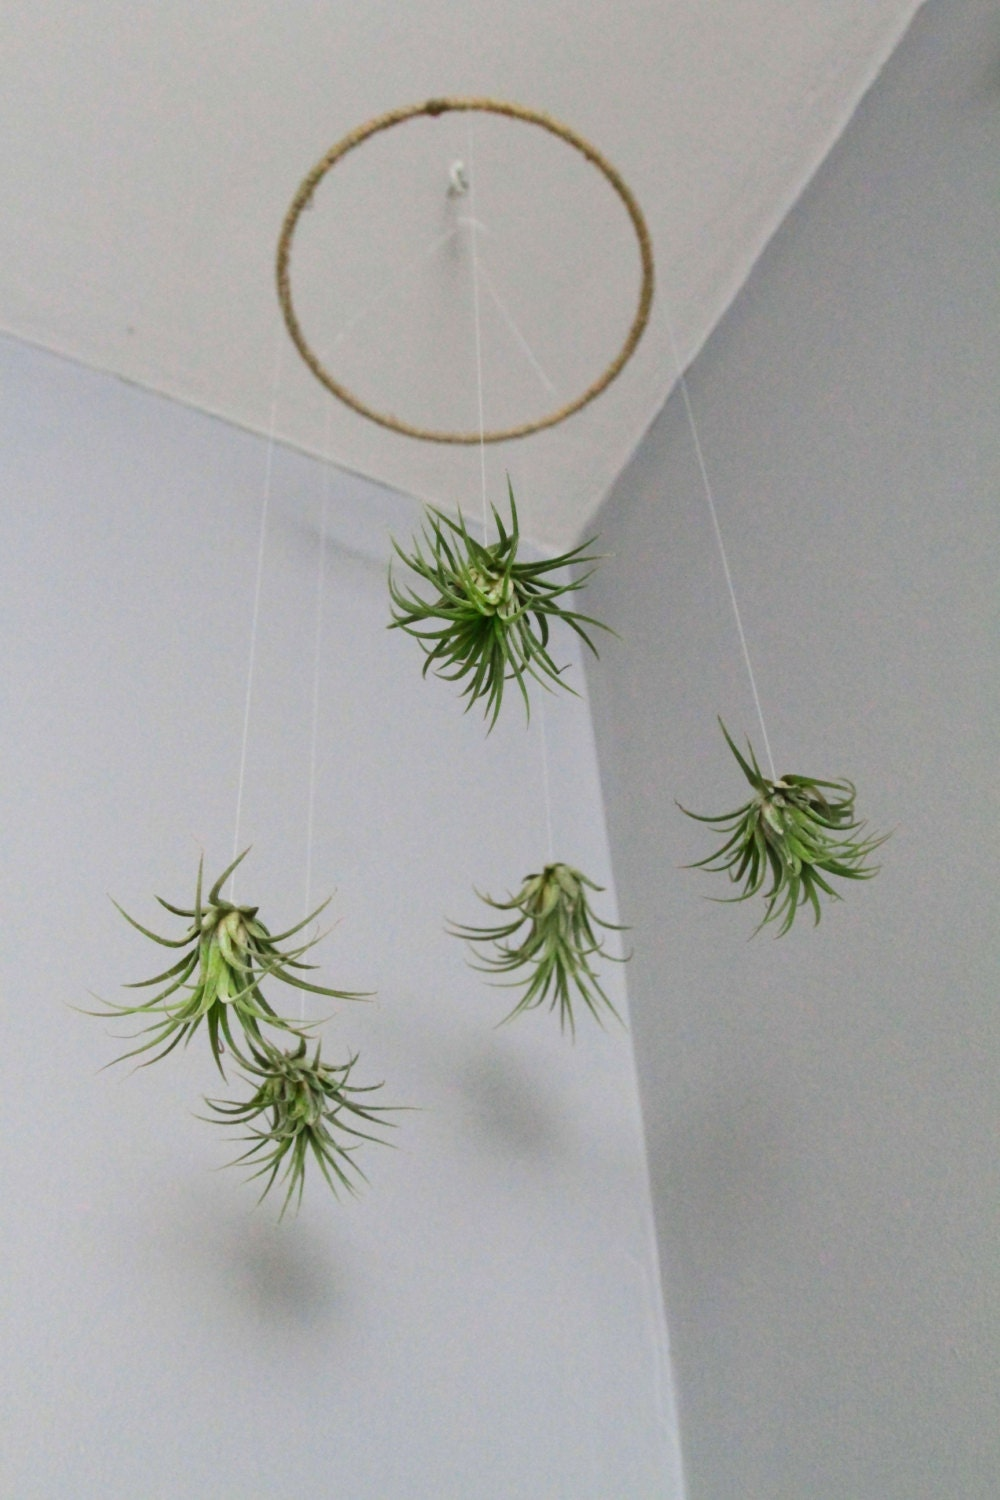 Air plant mobile natural living decor home decor for Home decor with plants